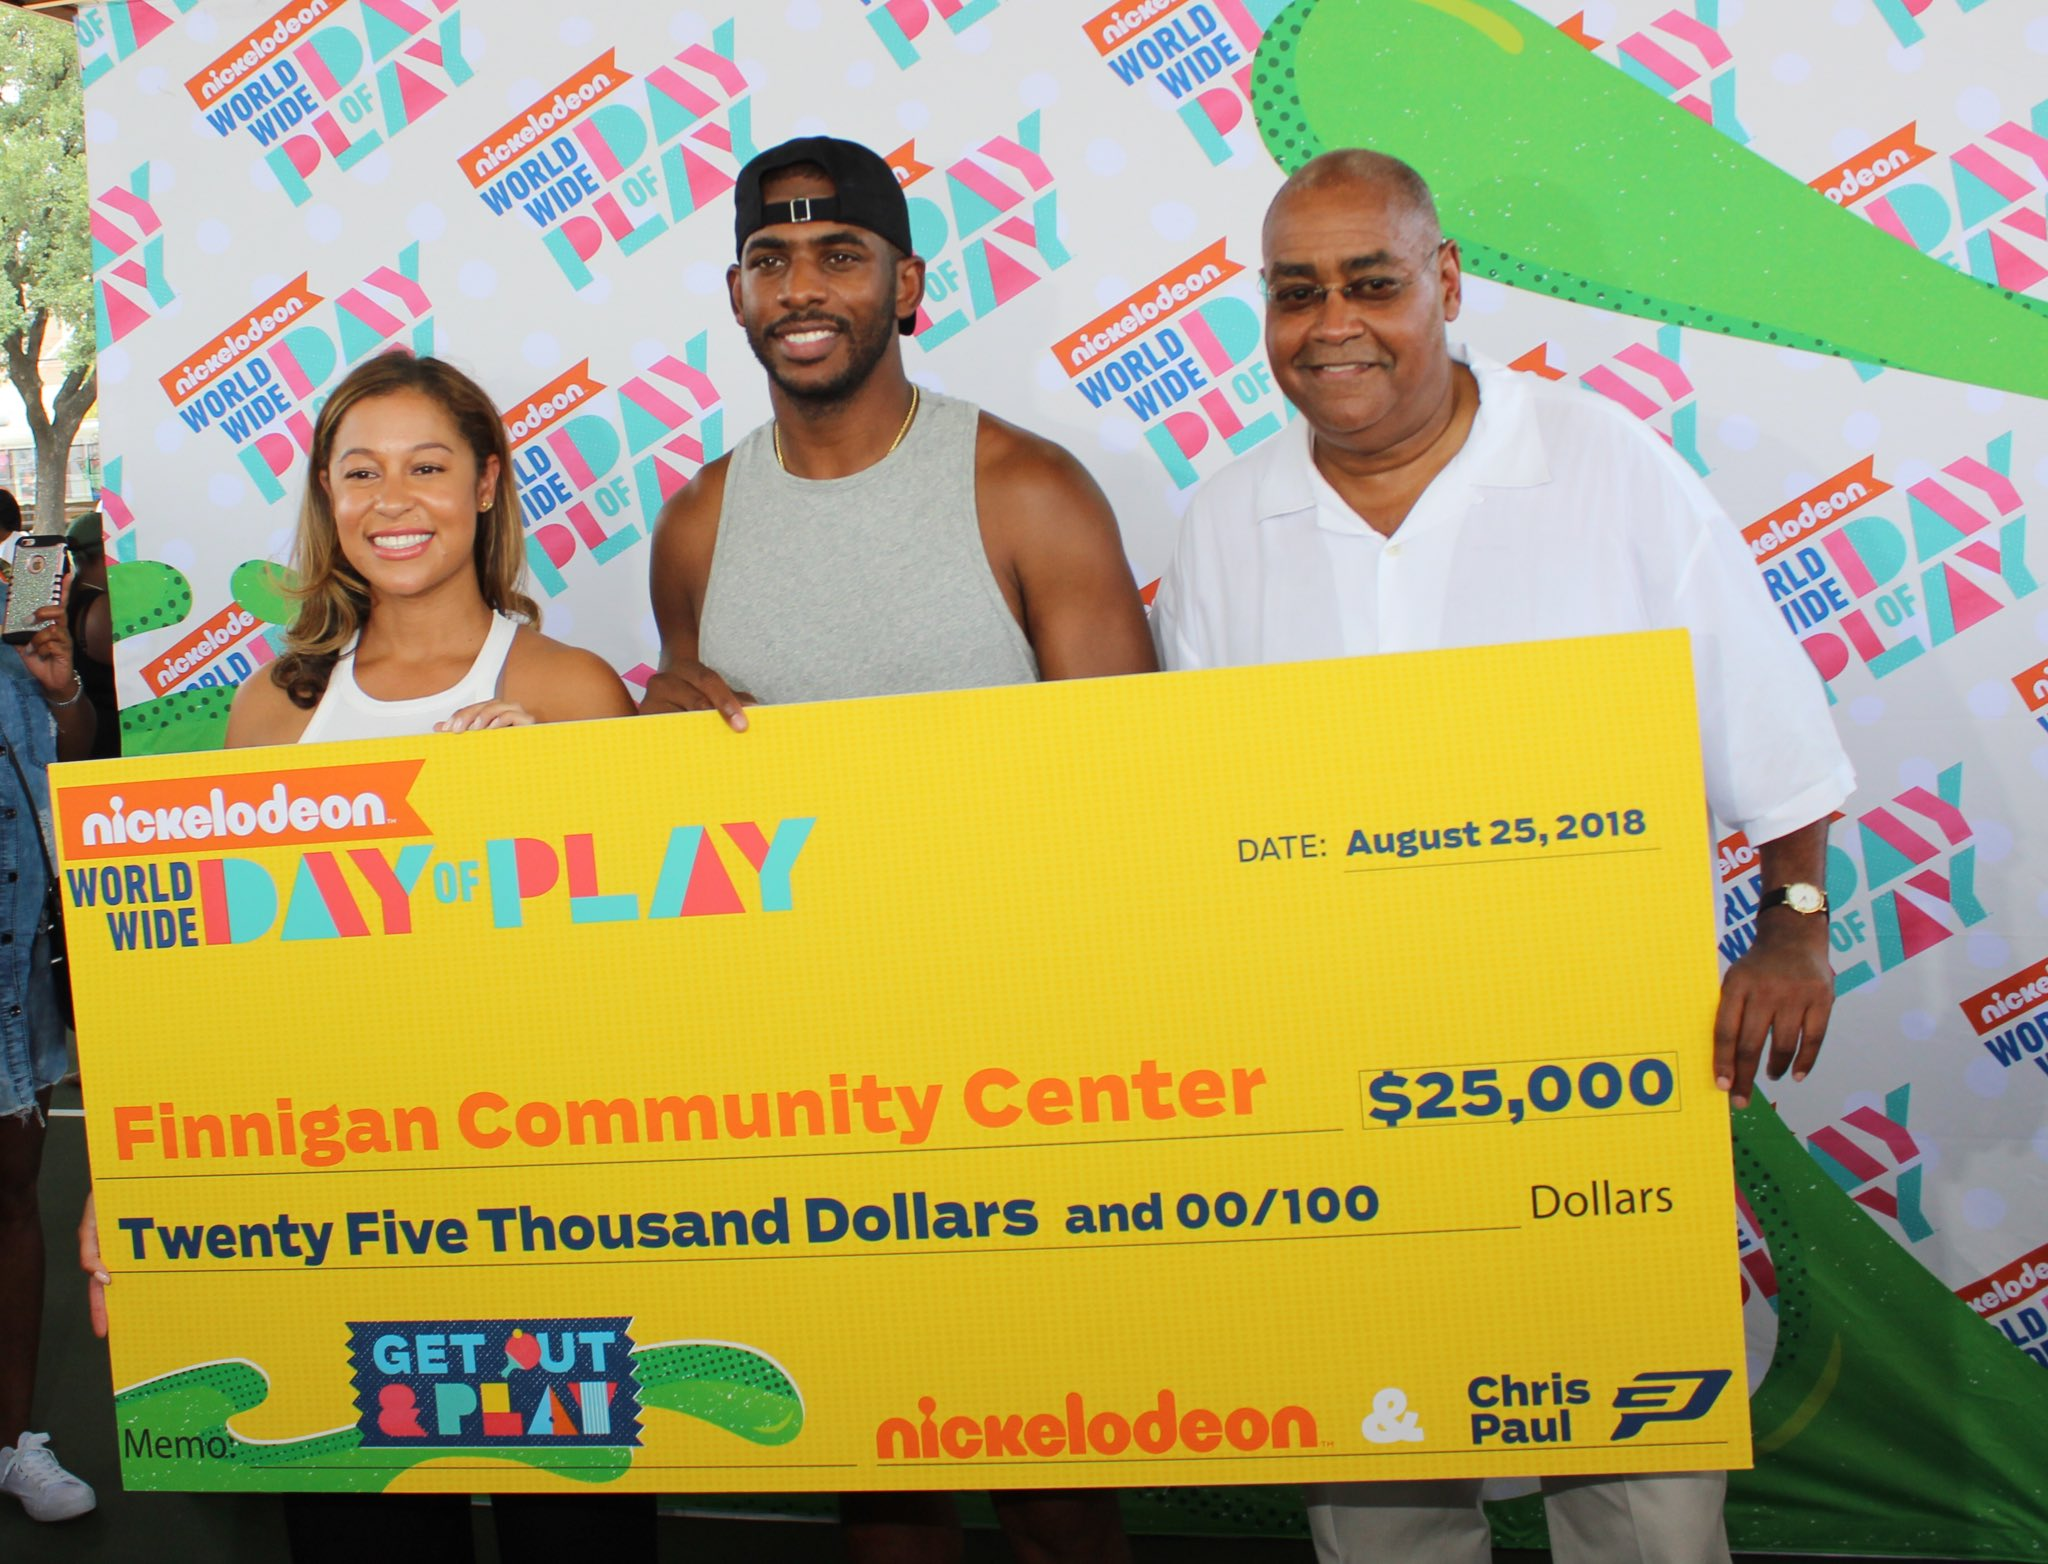 .@CP3 and @Nickelodeon teamed up to give $25,000 to the Finnigan Community Center in Houston! https://t.co/axSgTNXFHy